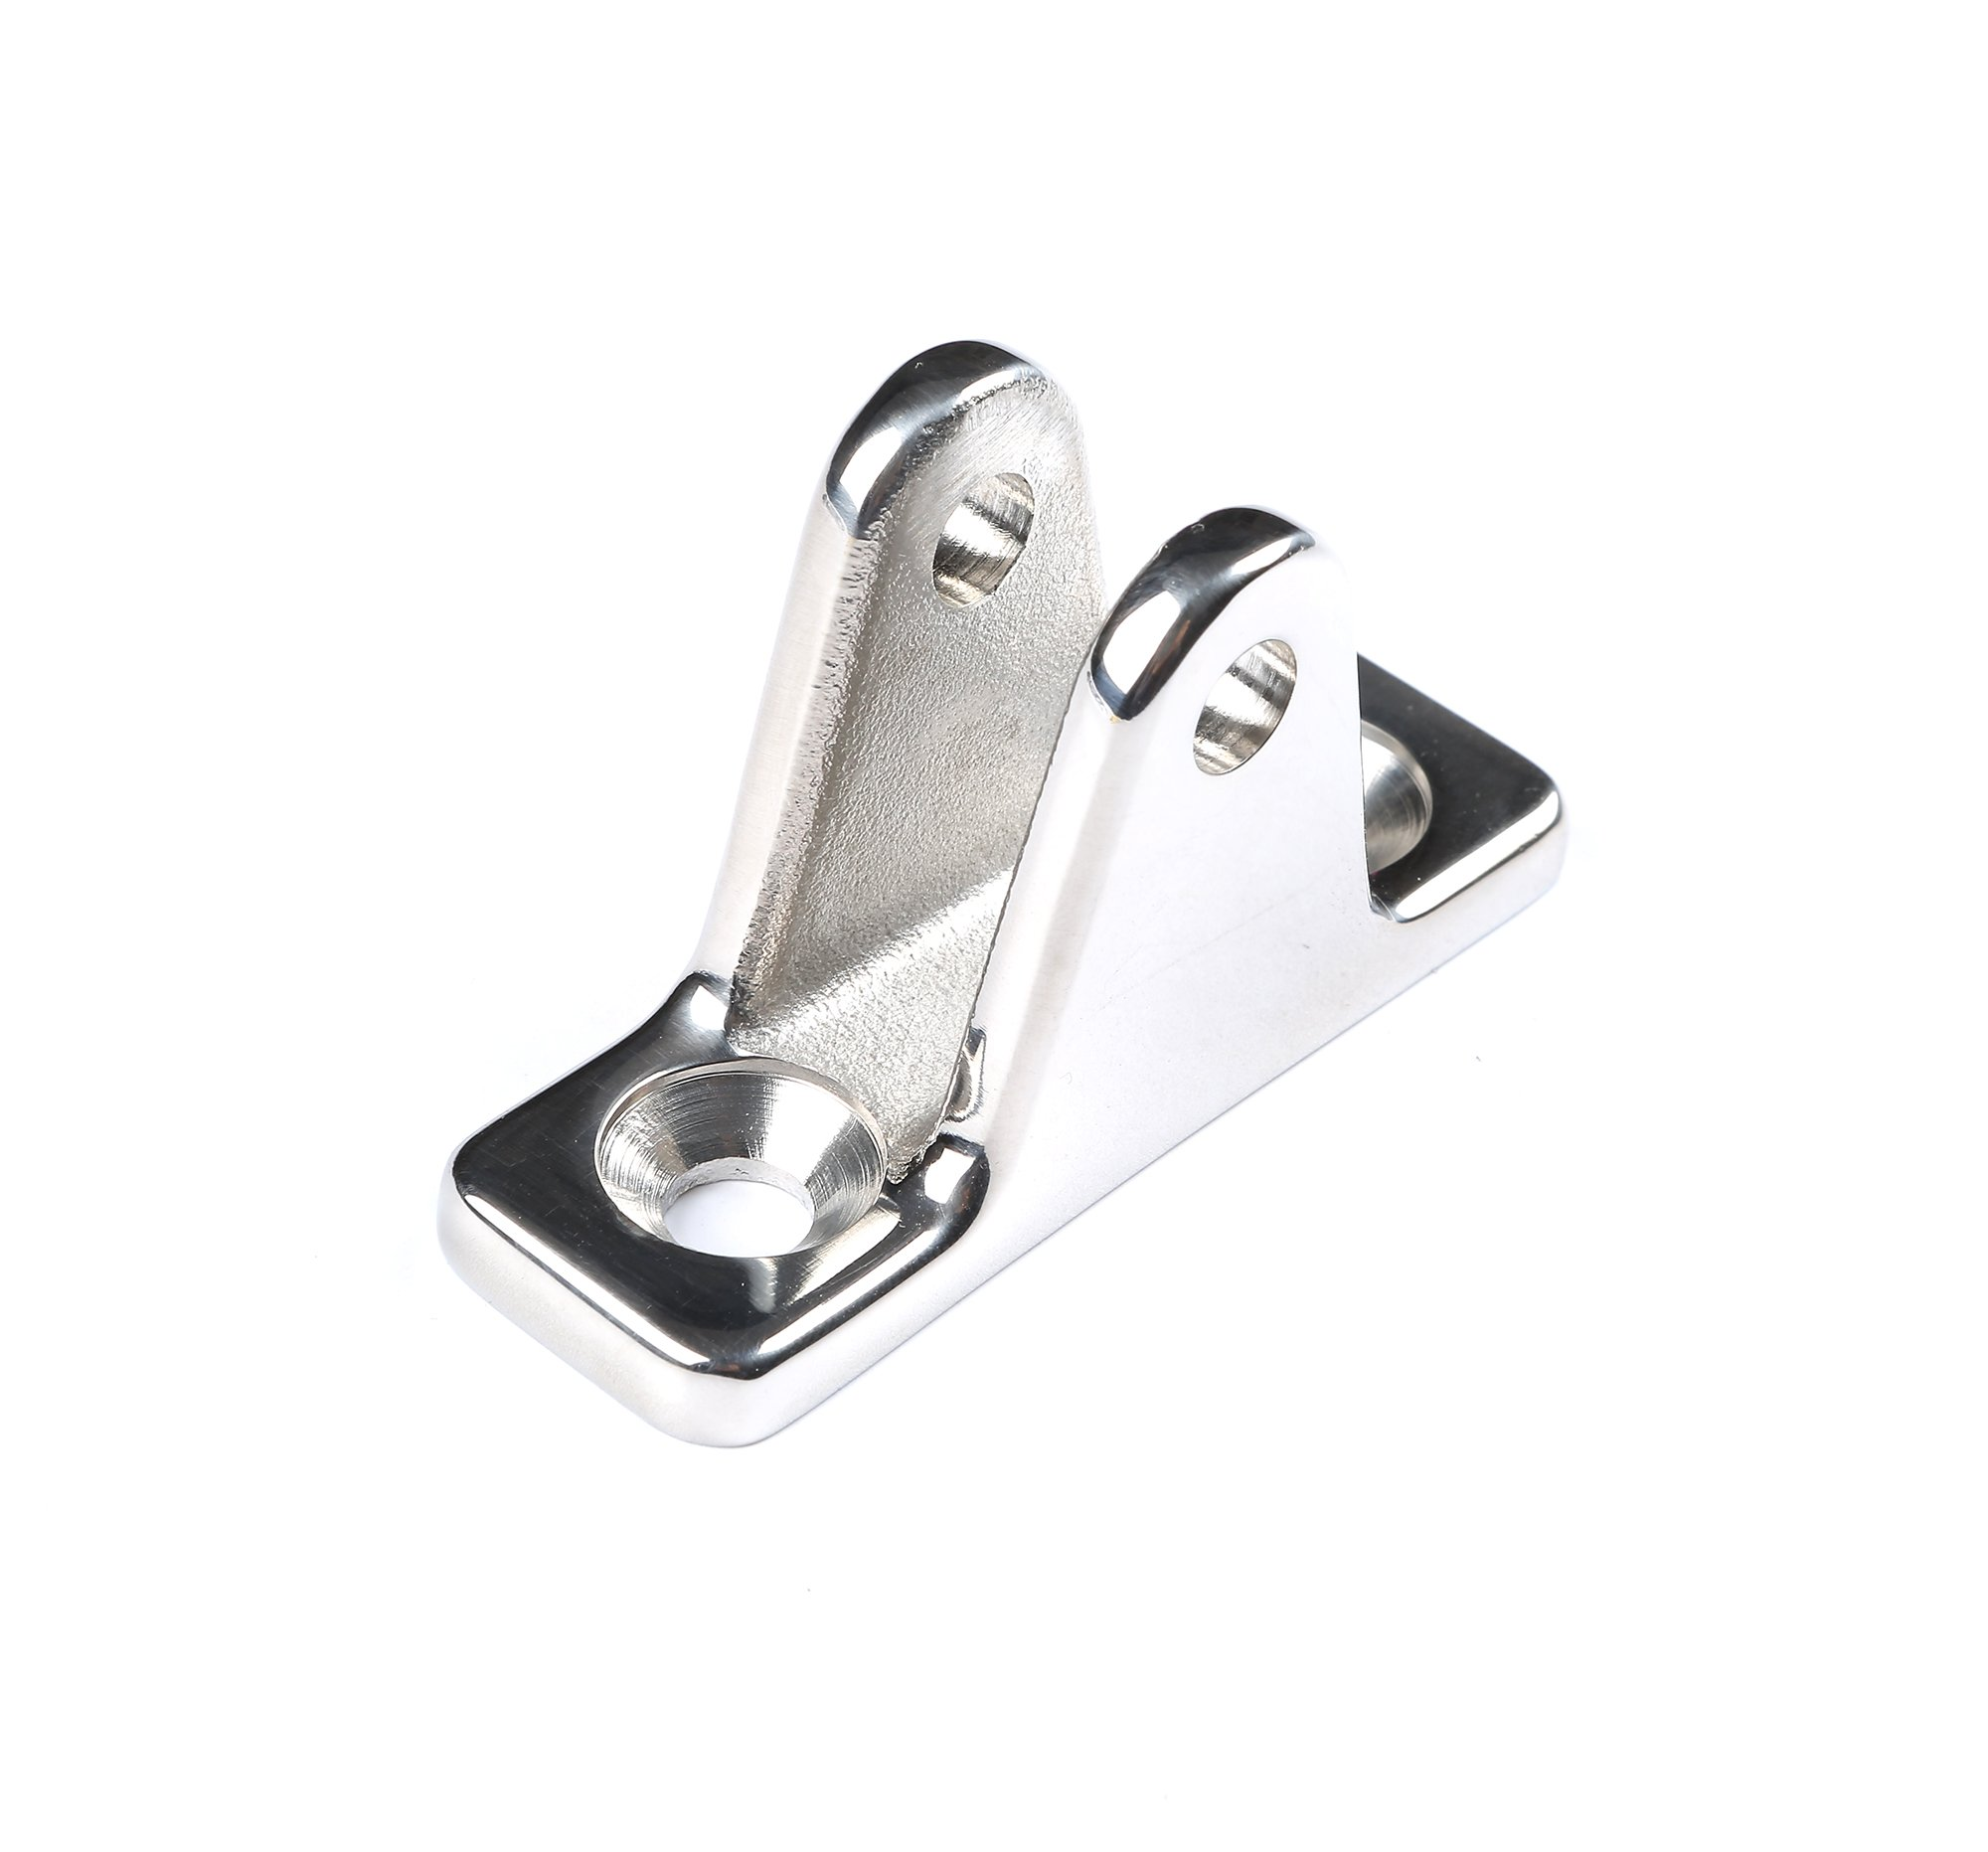 MxEol Boat Bimini Top Deck Hinge w/Lanyard Quick Release Pin w/Screws Stainless Steel by MxEol (Image #5)